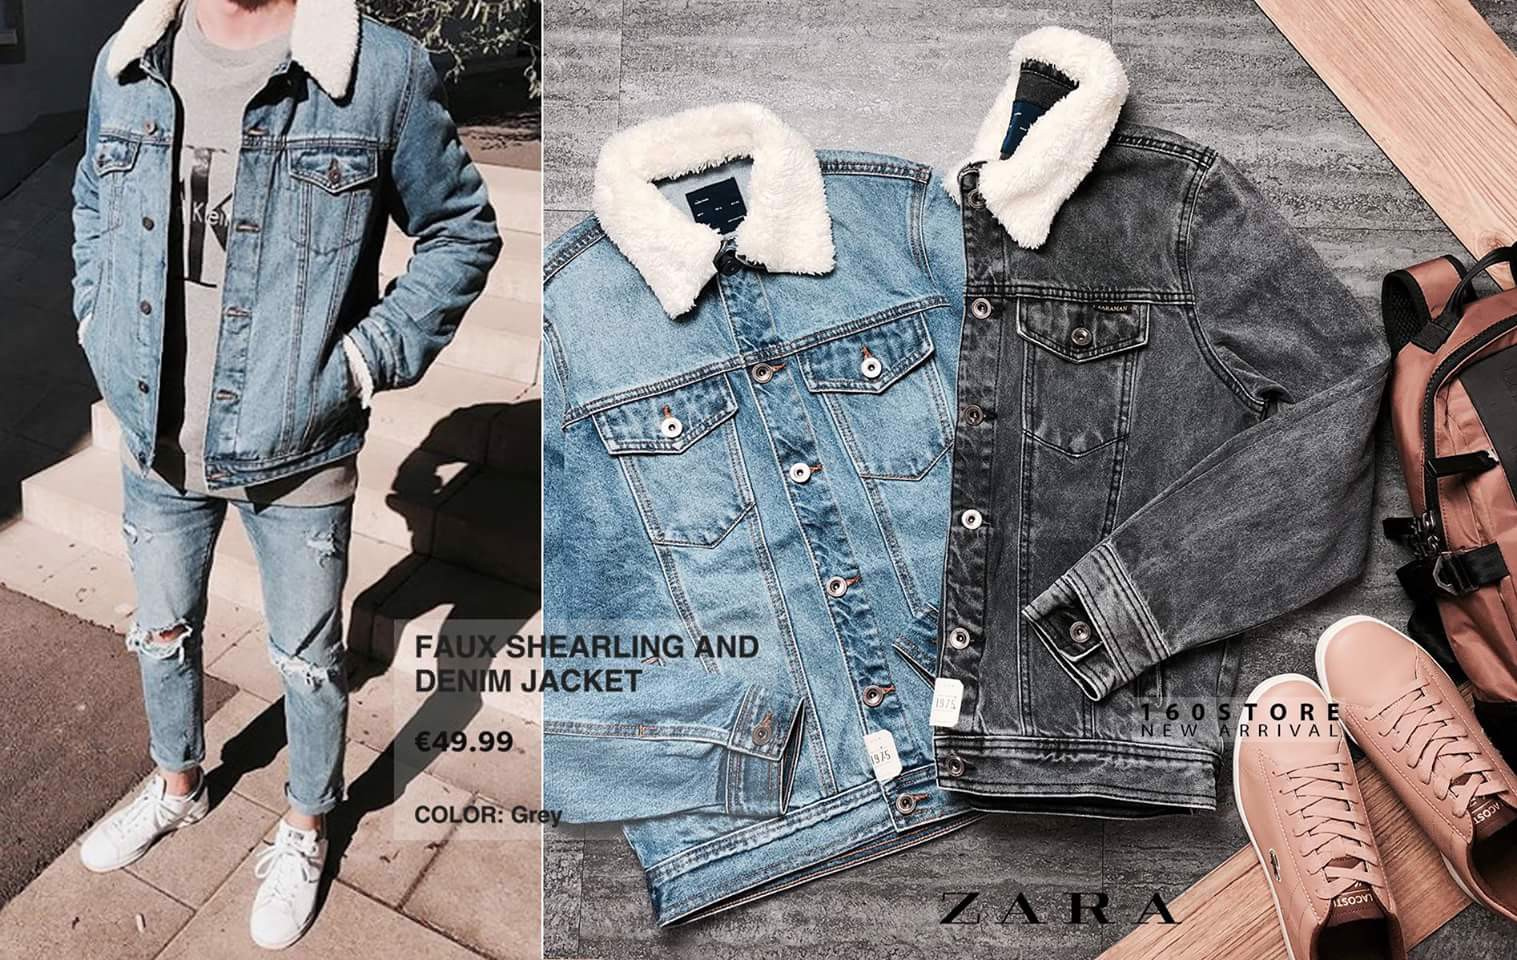 ZRA Faux Shearling and Denim Jacket